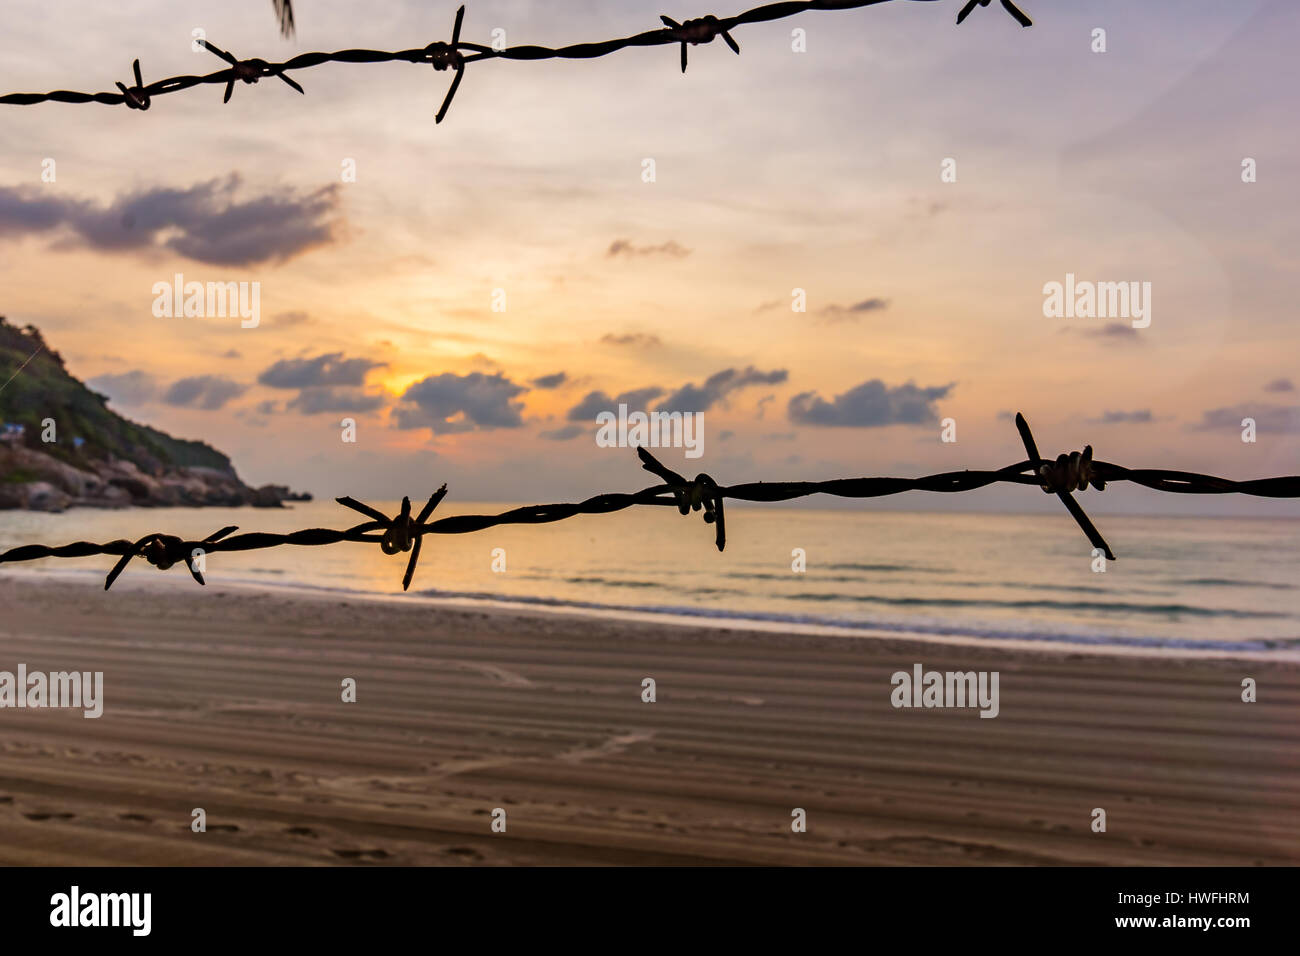 An unknown raked sandy beach with barbed wire against refugees? - Stock Image